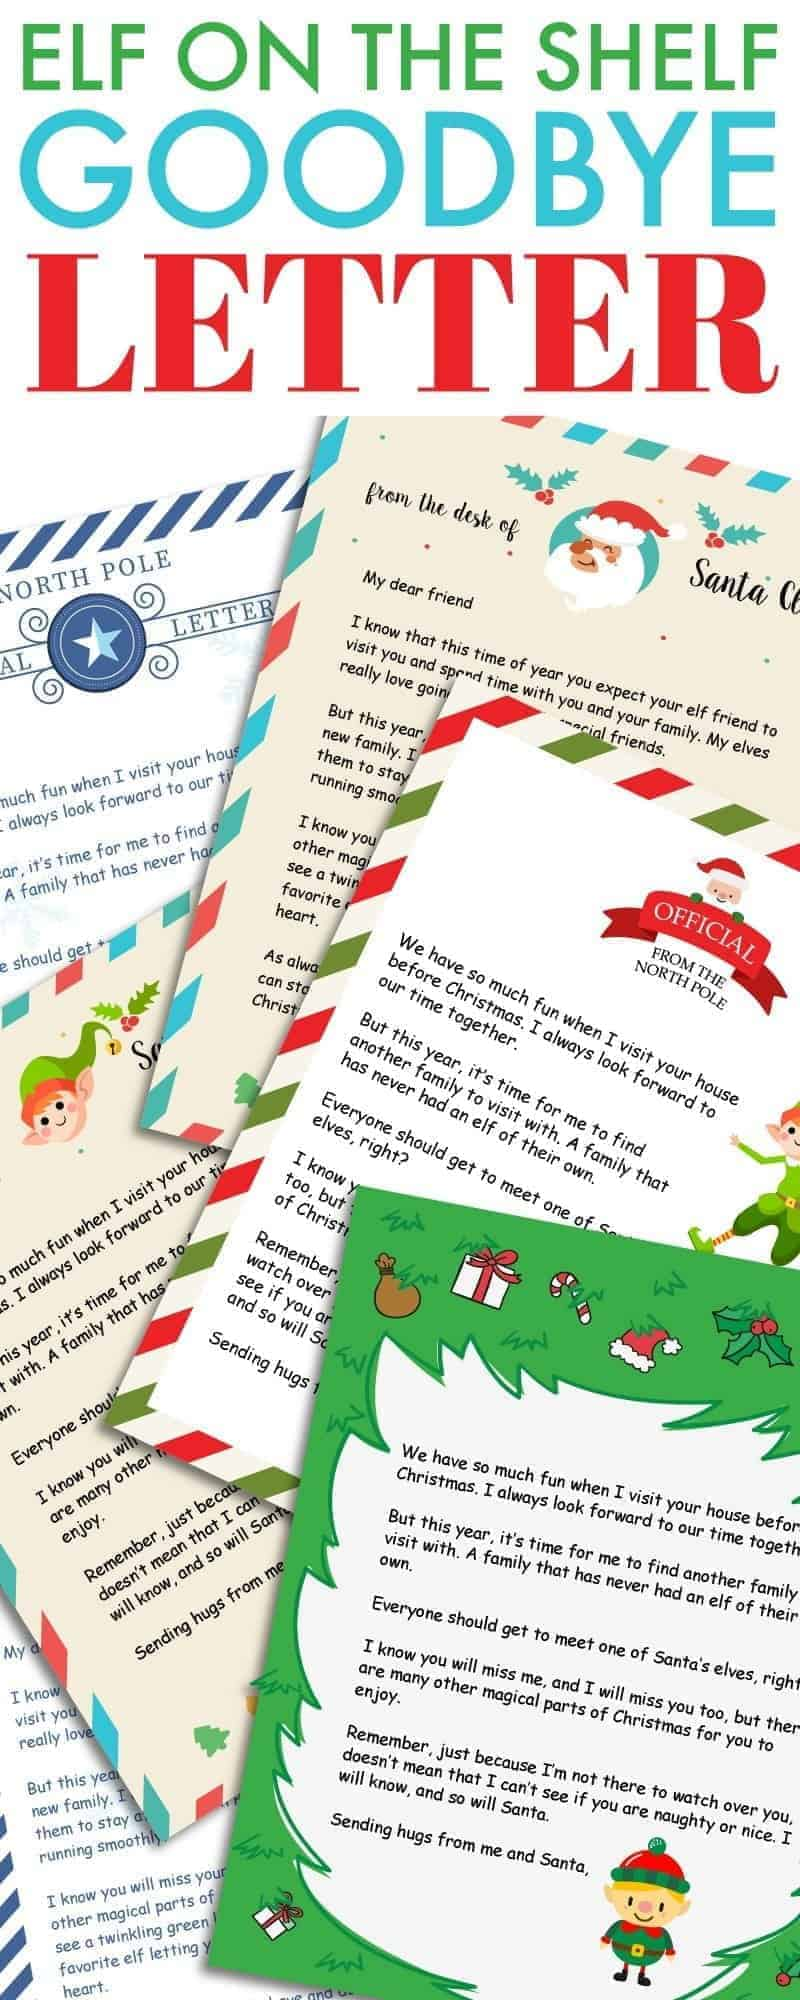 graphic regarding Elf on the Shelf Letter Printable referred to as Elf upon the Shelf Goodbye Letter - Totally free Printable - 730 Sage